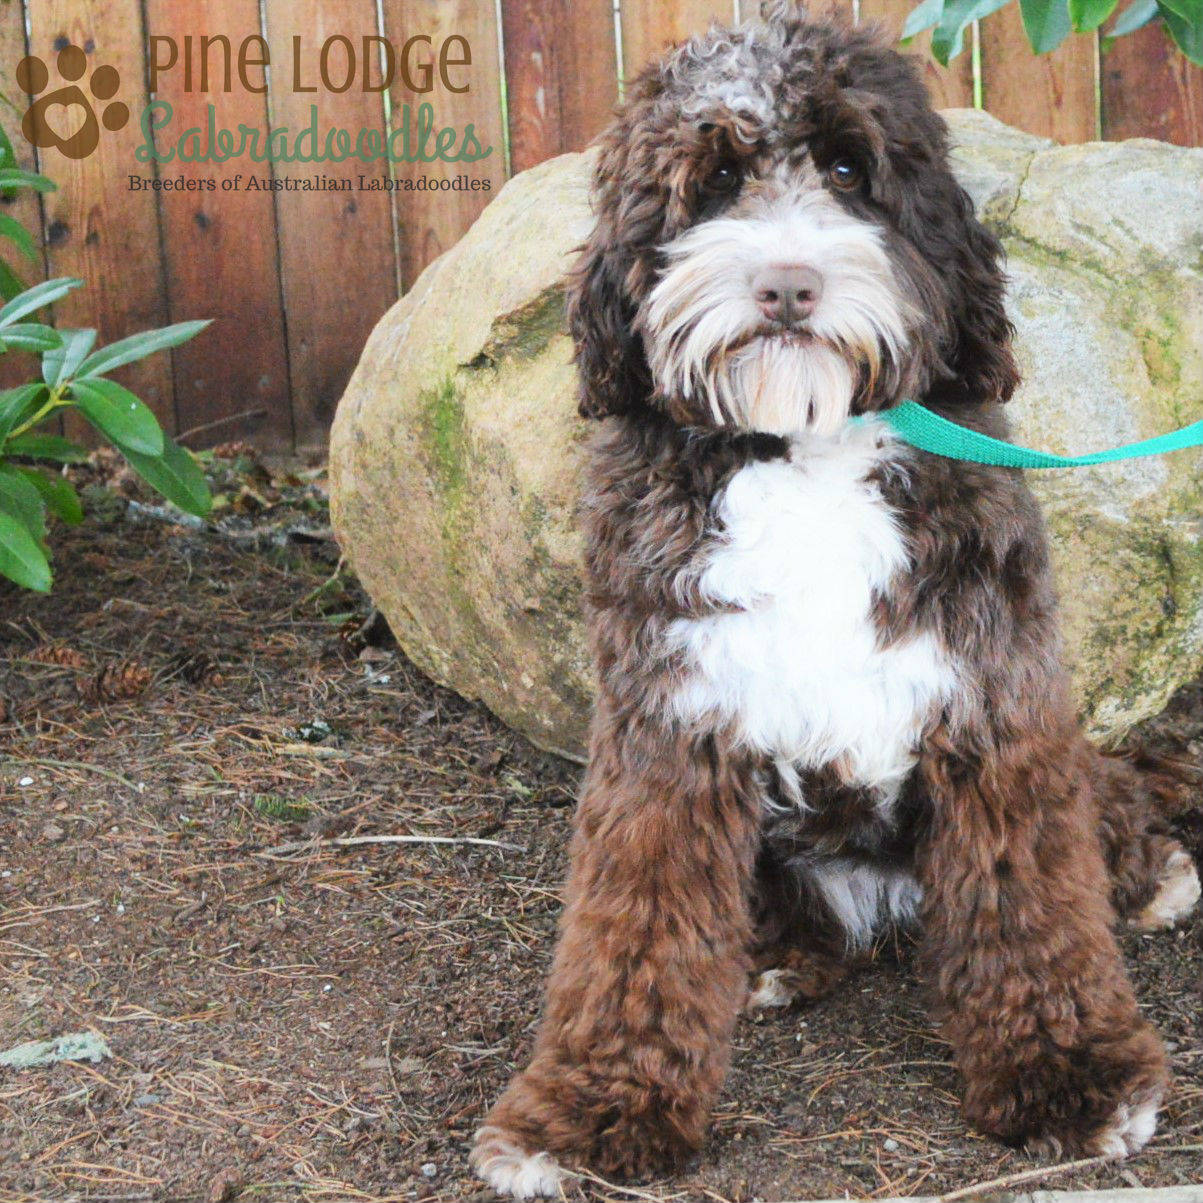 Our Gals – Pine Lodge Labradoodles